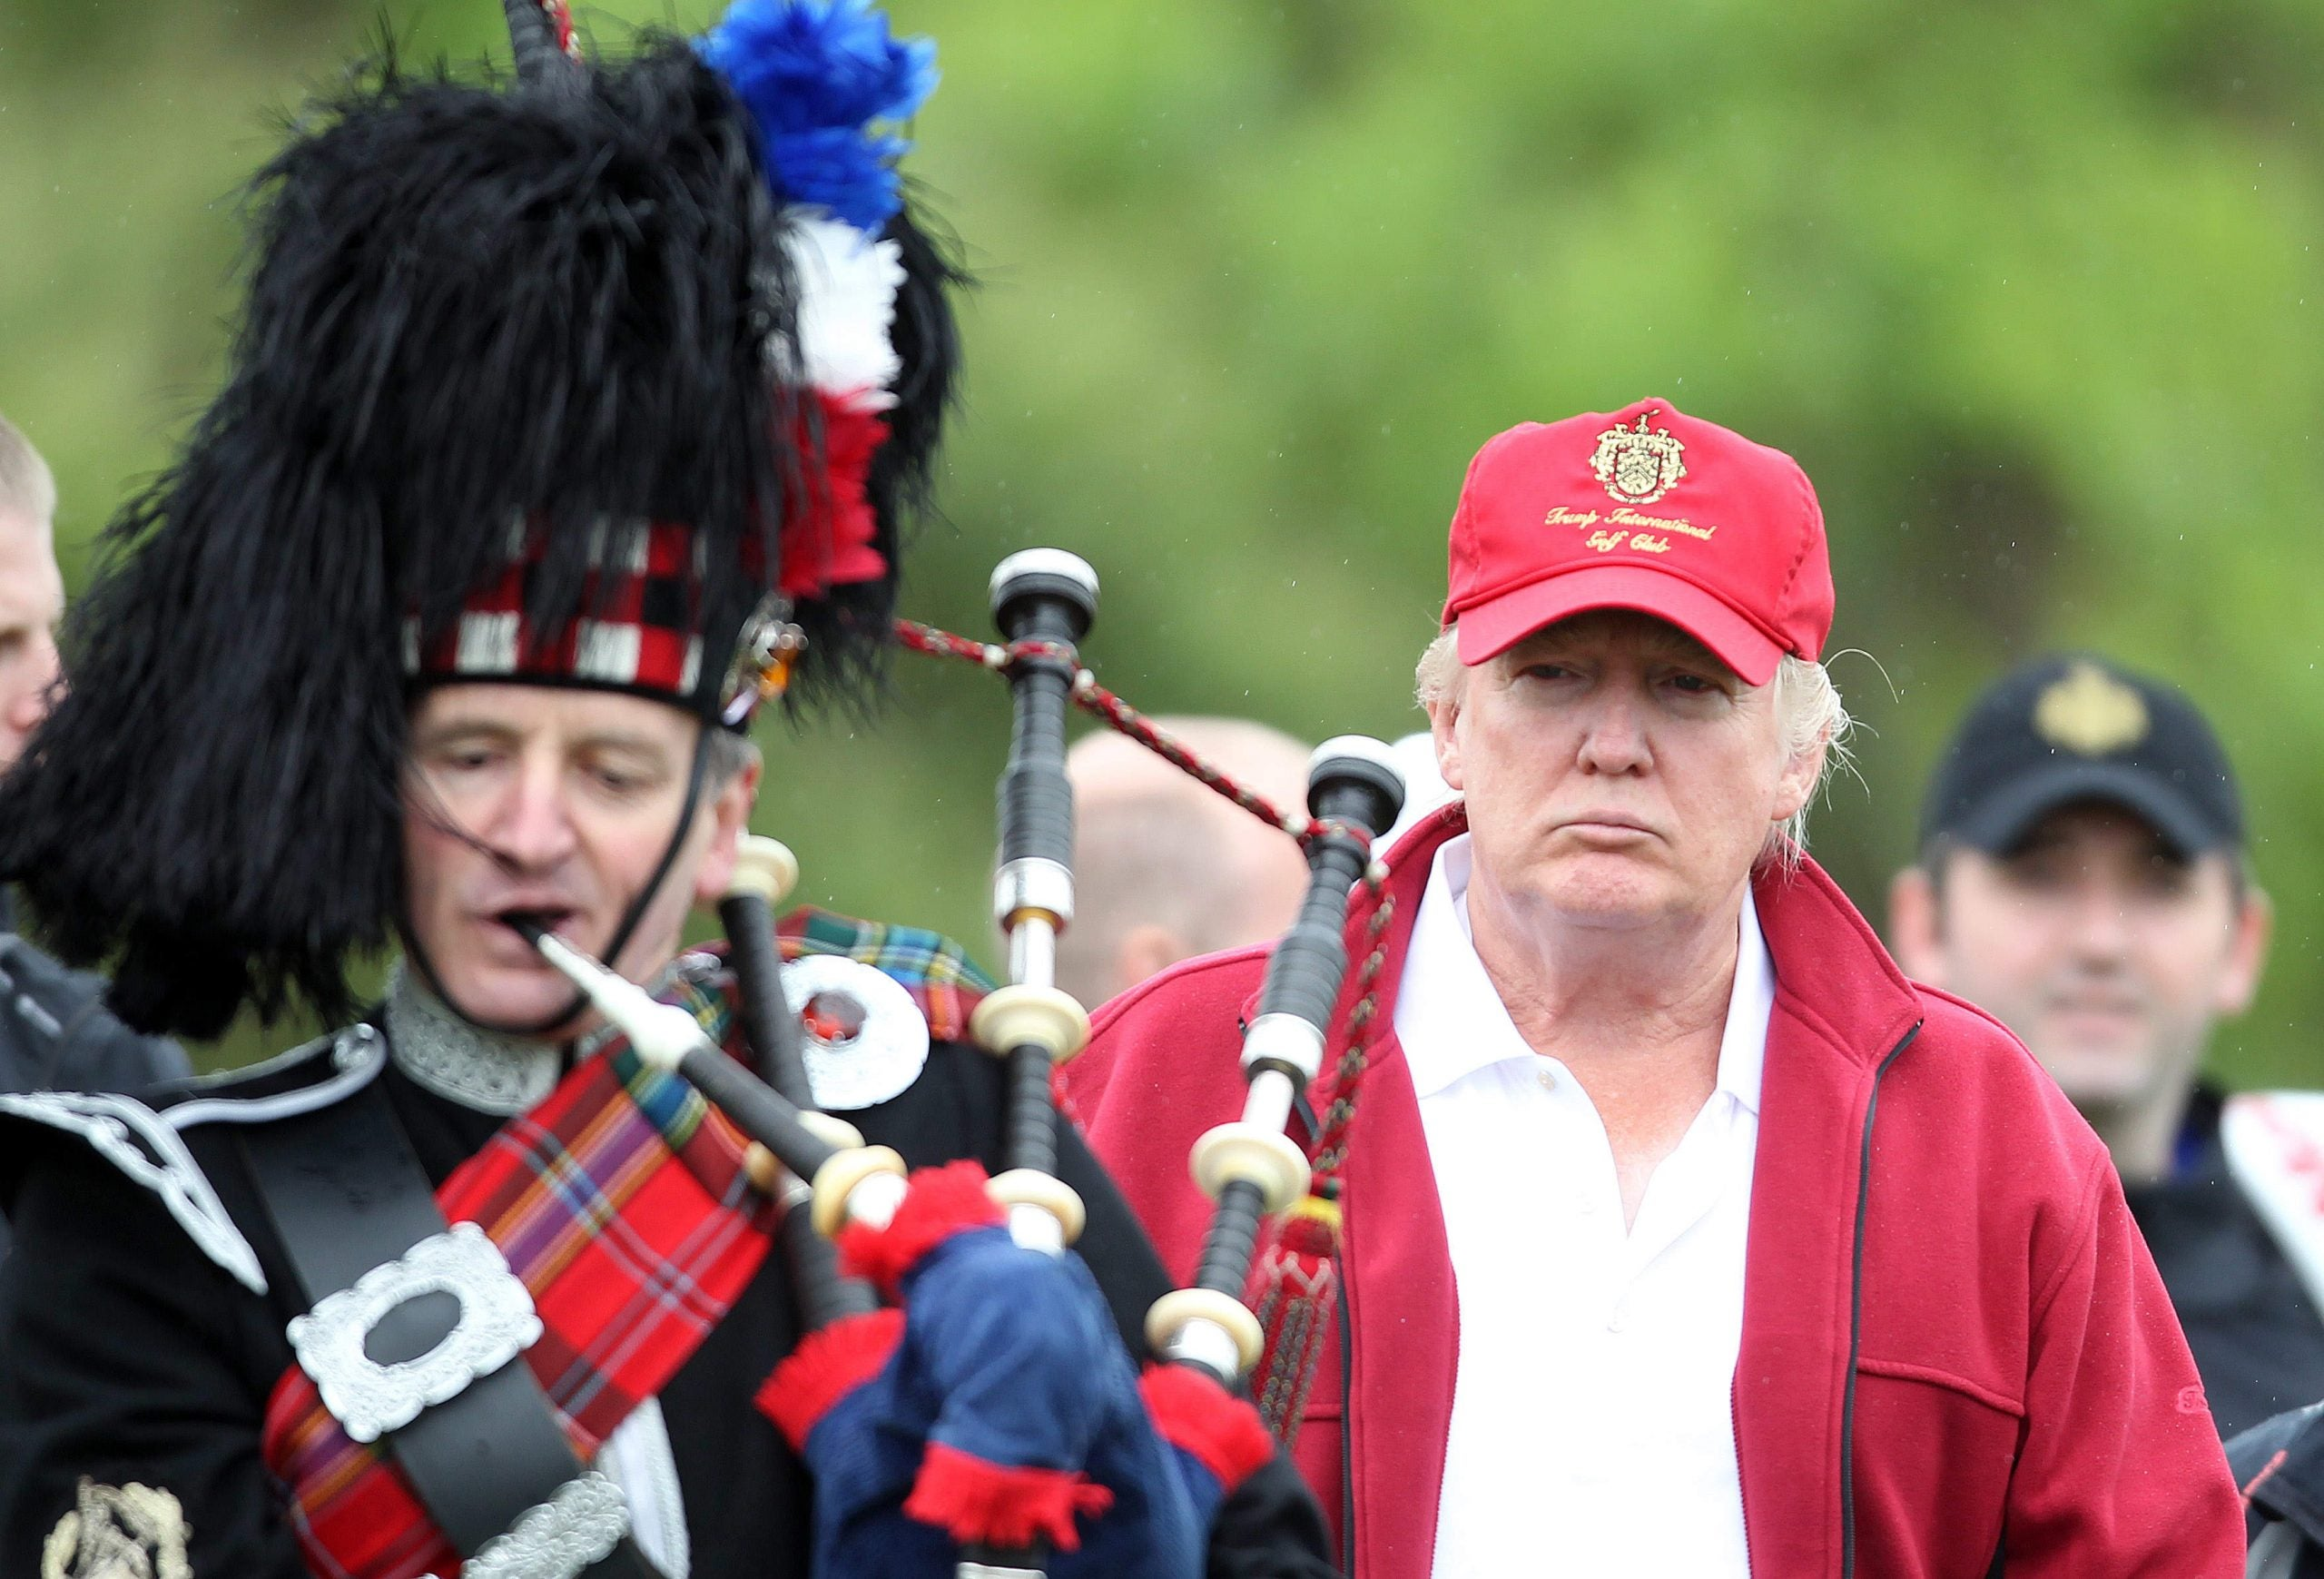 Here's how Donald Trump can help make Scotland great again